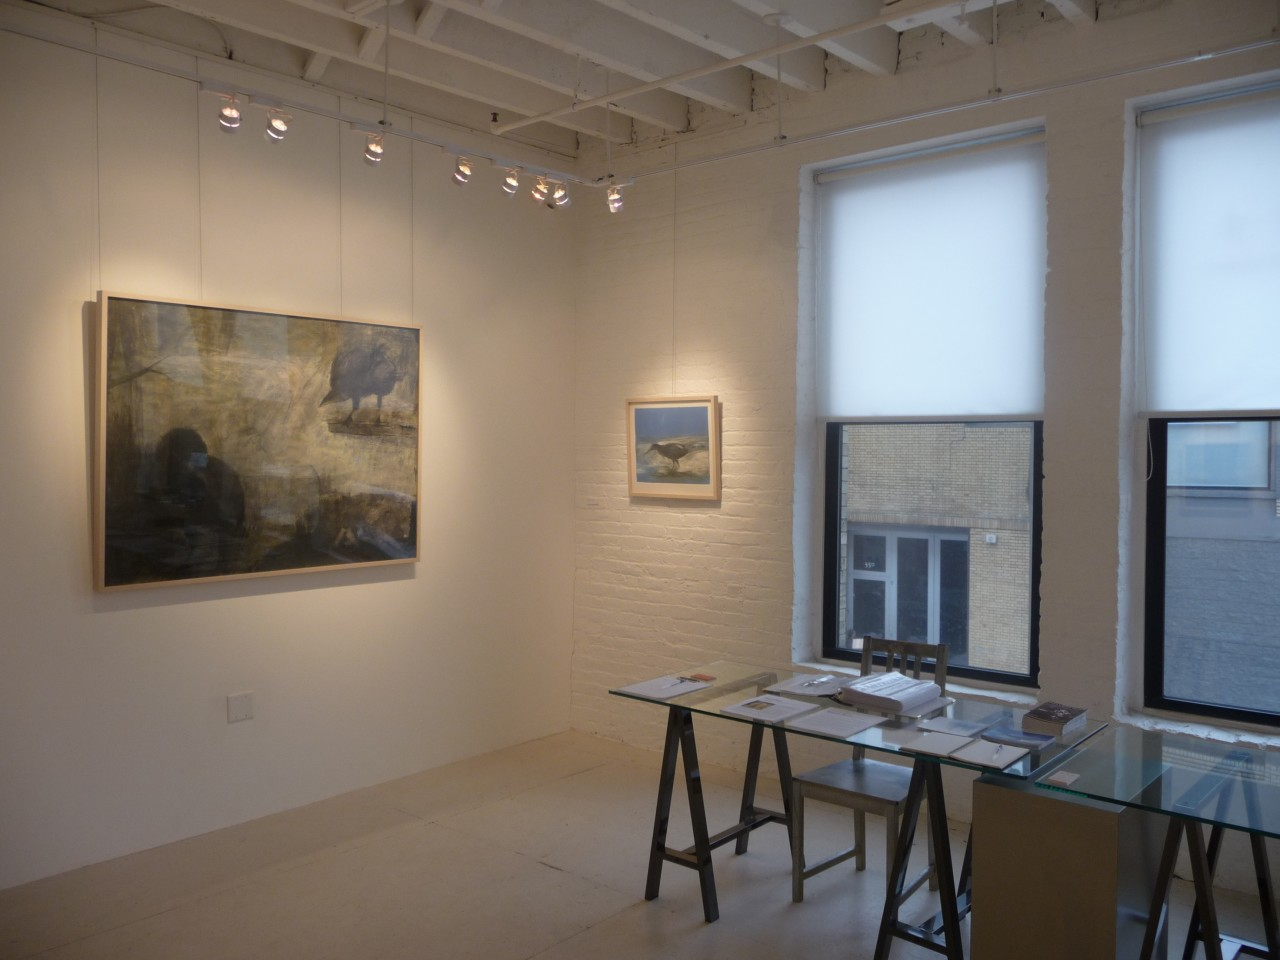 Installation view, Malcolm Moran: A Bird Rested Upon His Thoughts at 571 Projects, NYC